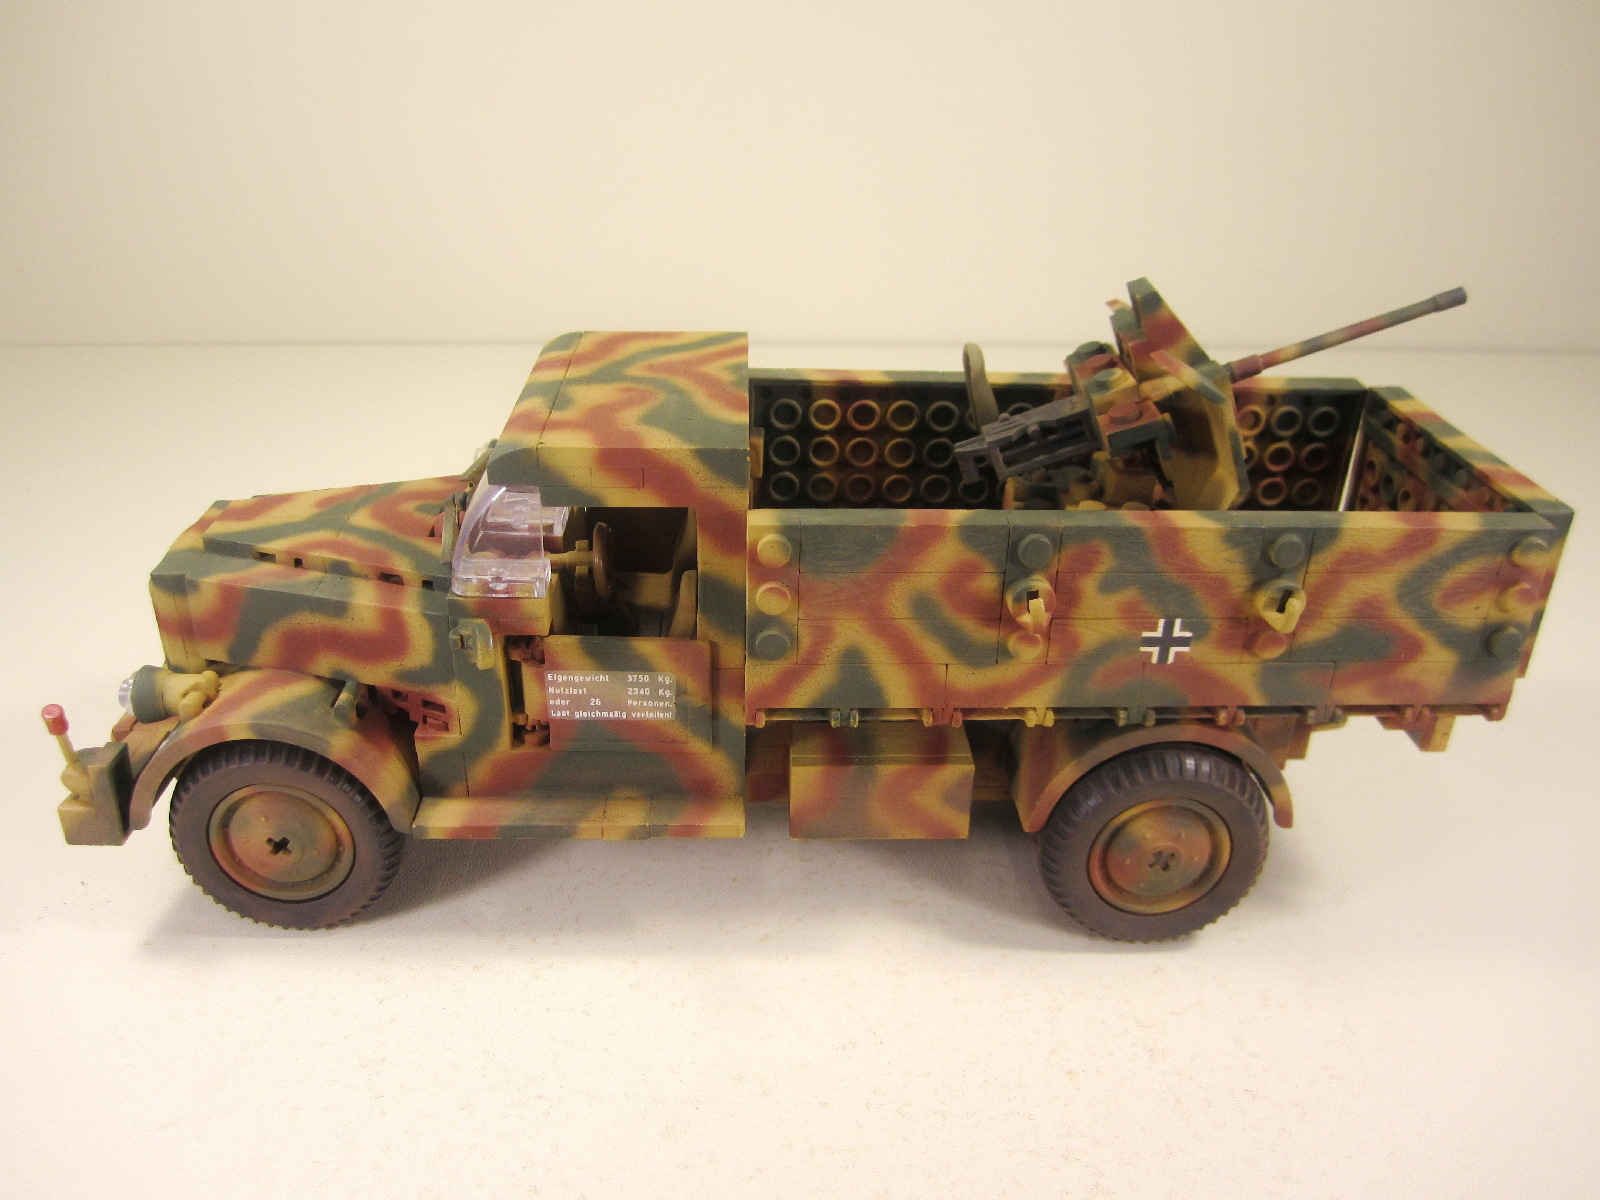 Cobi_2455_MB_L3000_www.super-bricks.de_camouflage_paint_Small_Army_Tarnung_01